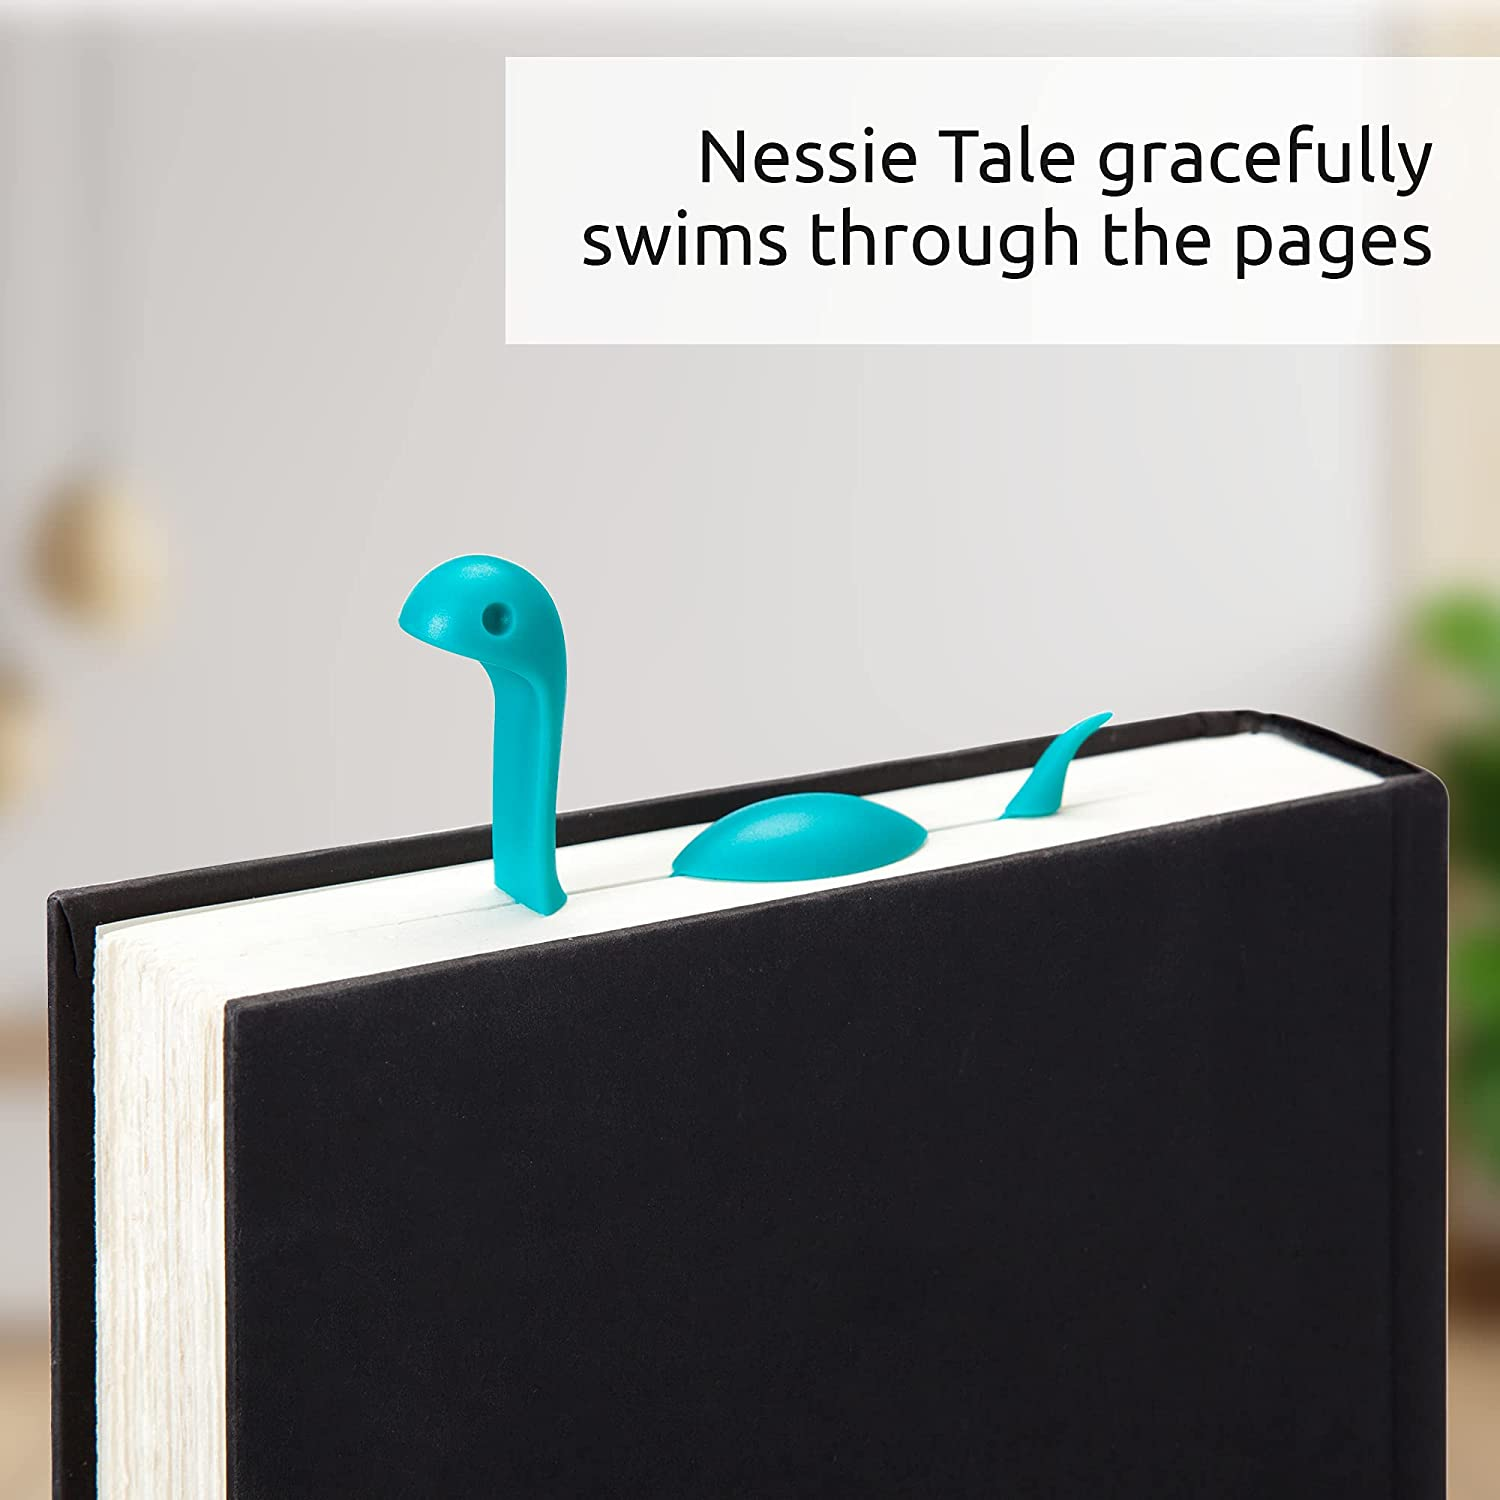 A closed book with a blue lochness monster bookmark peeking out at the top